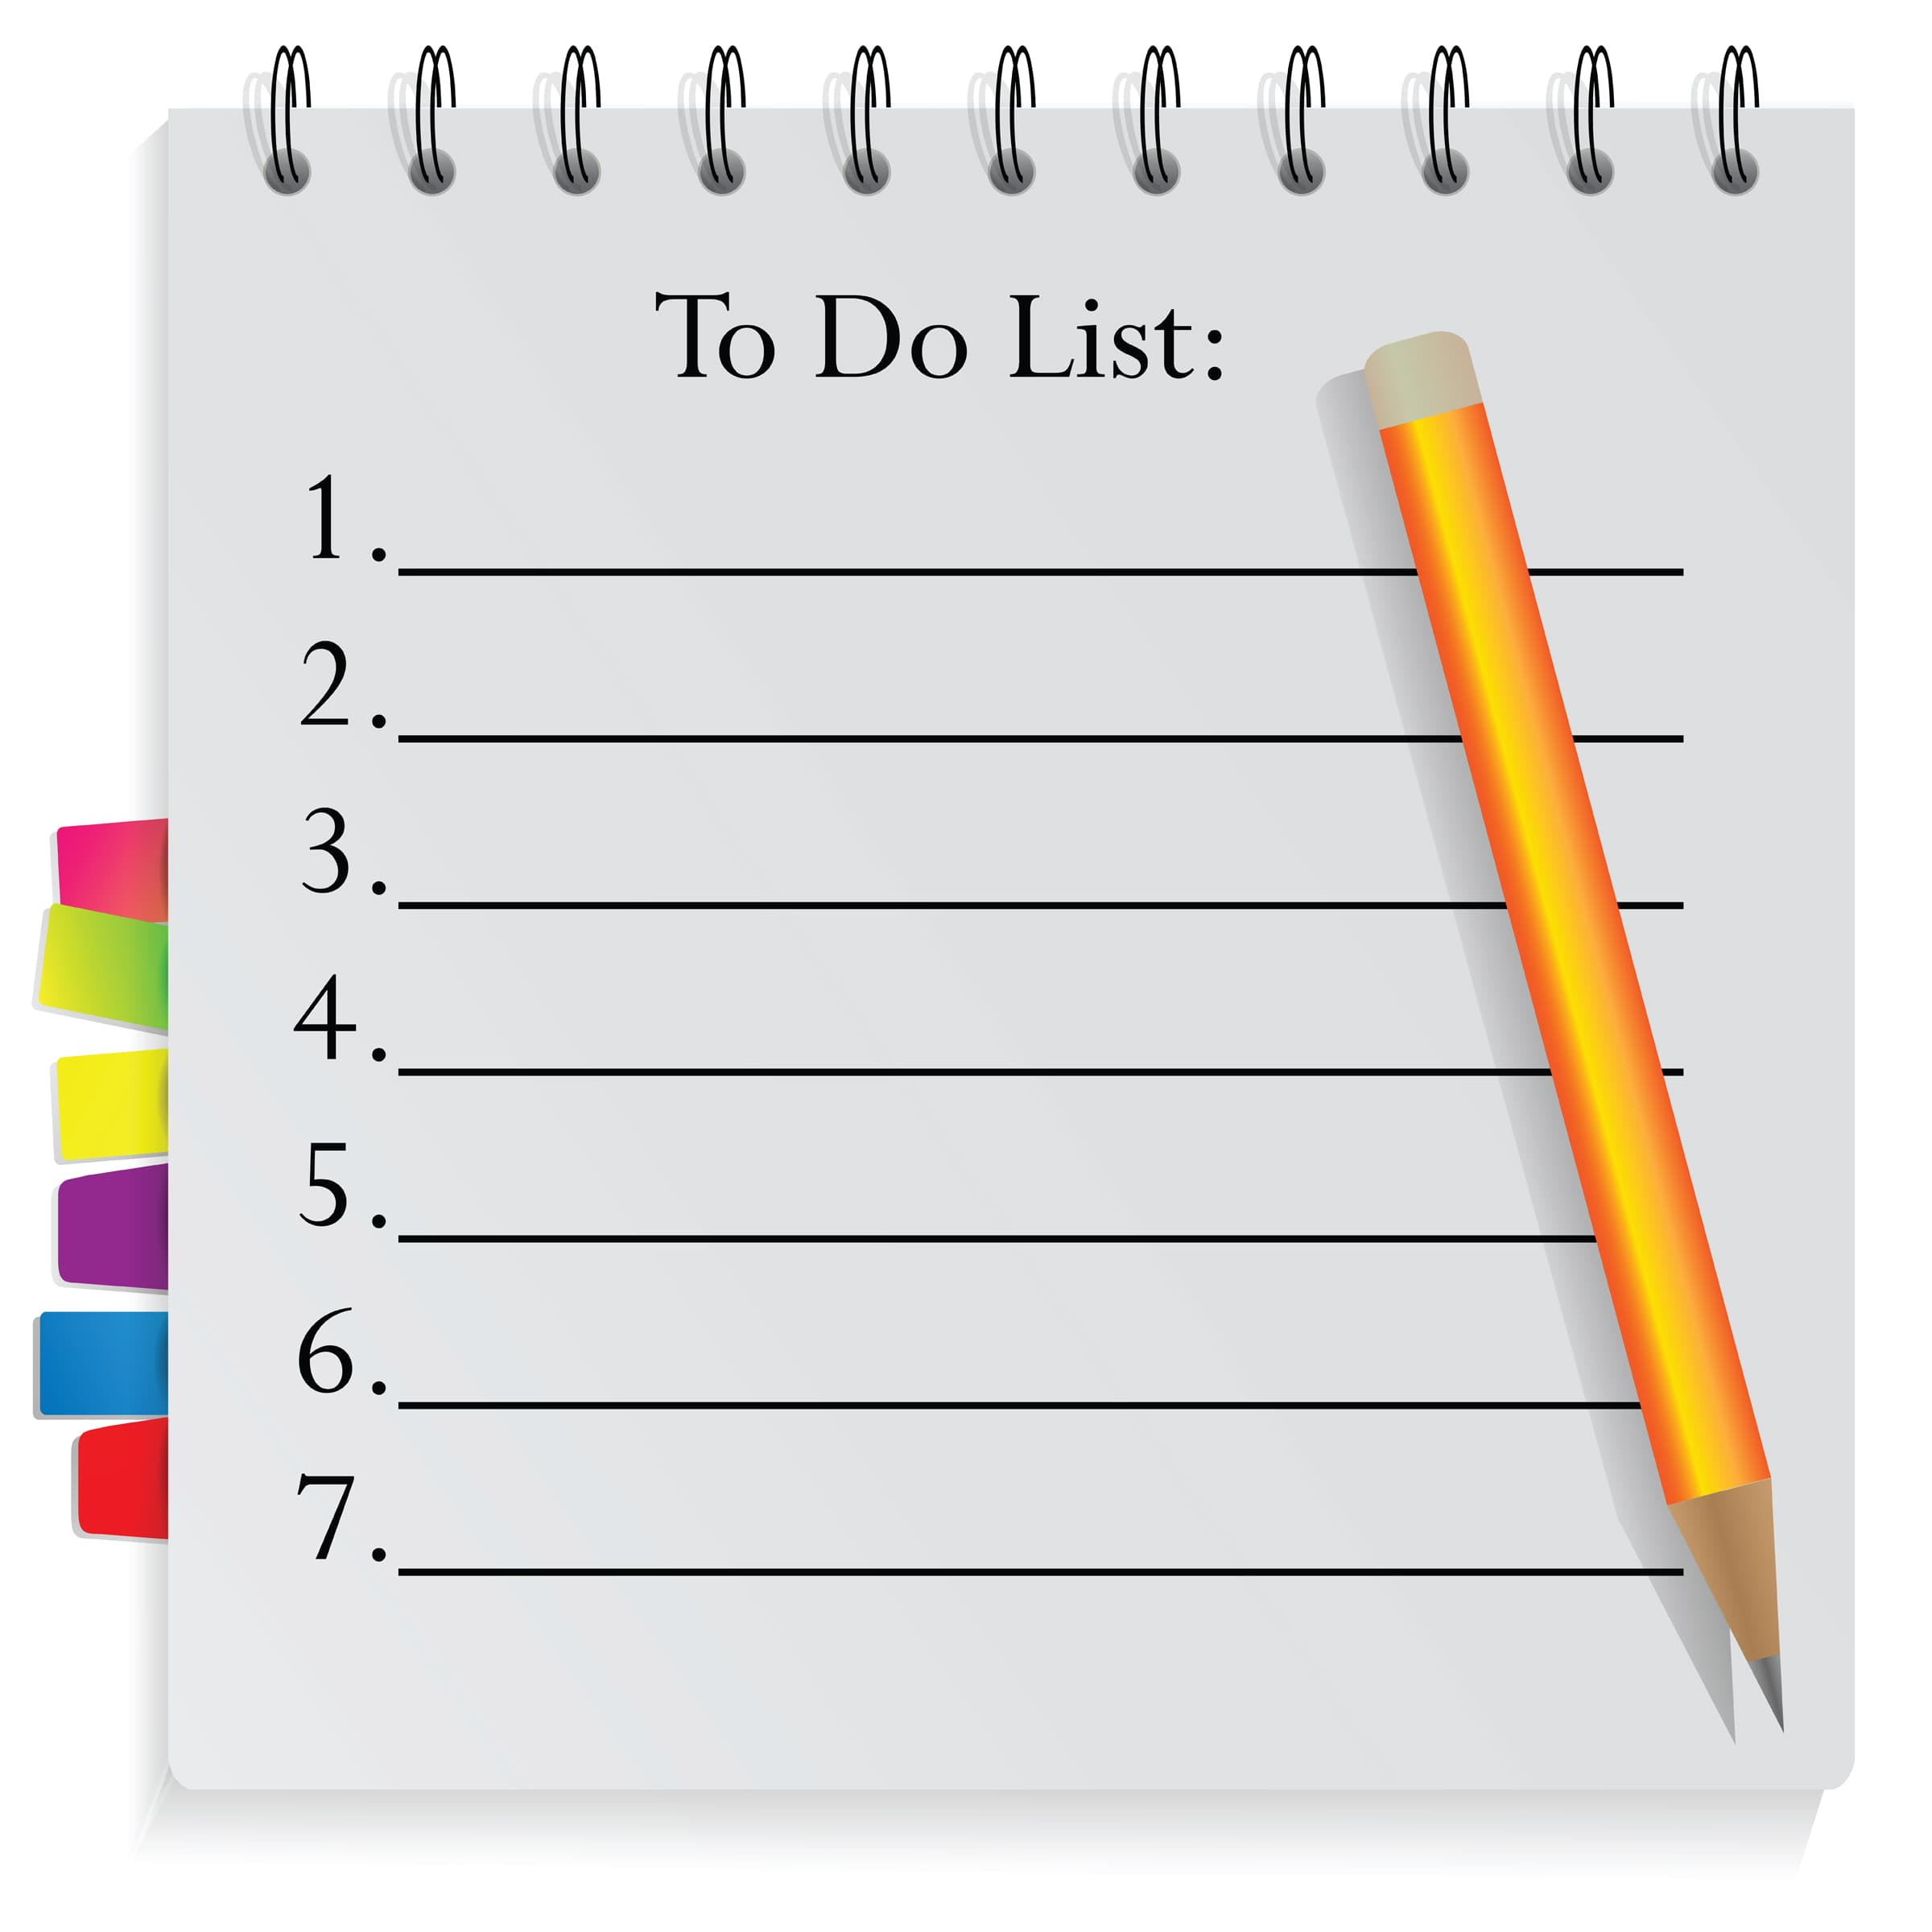 Let's skip the To-Do list!